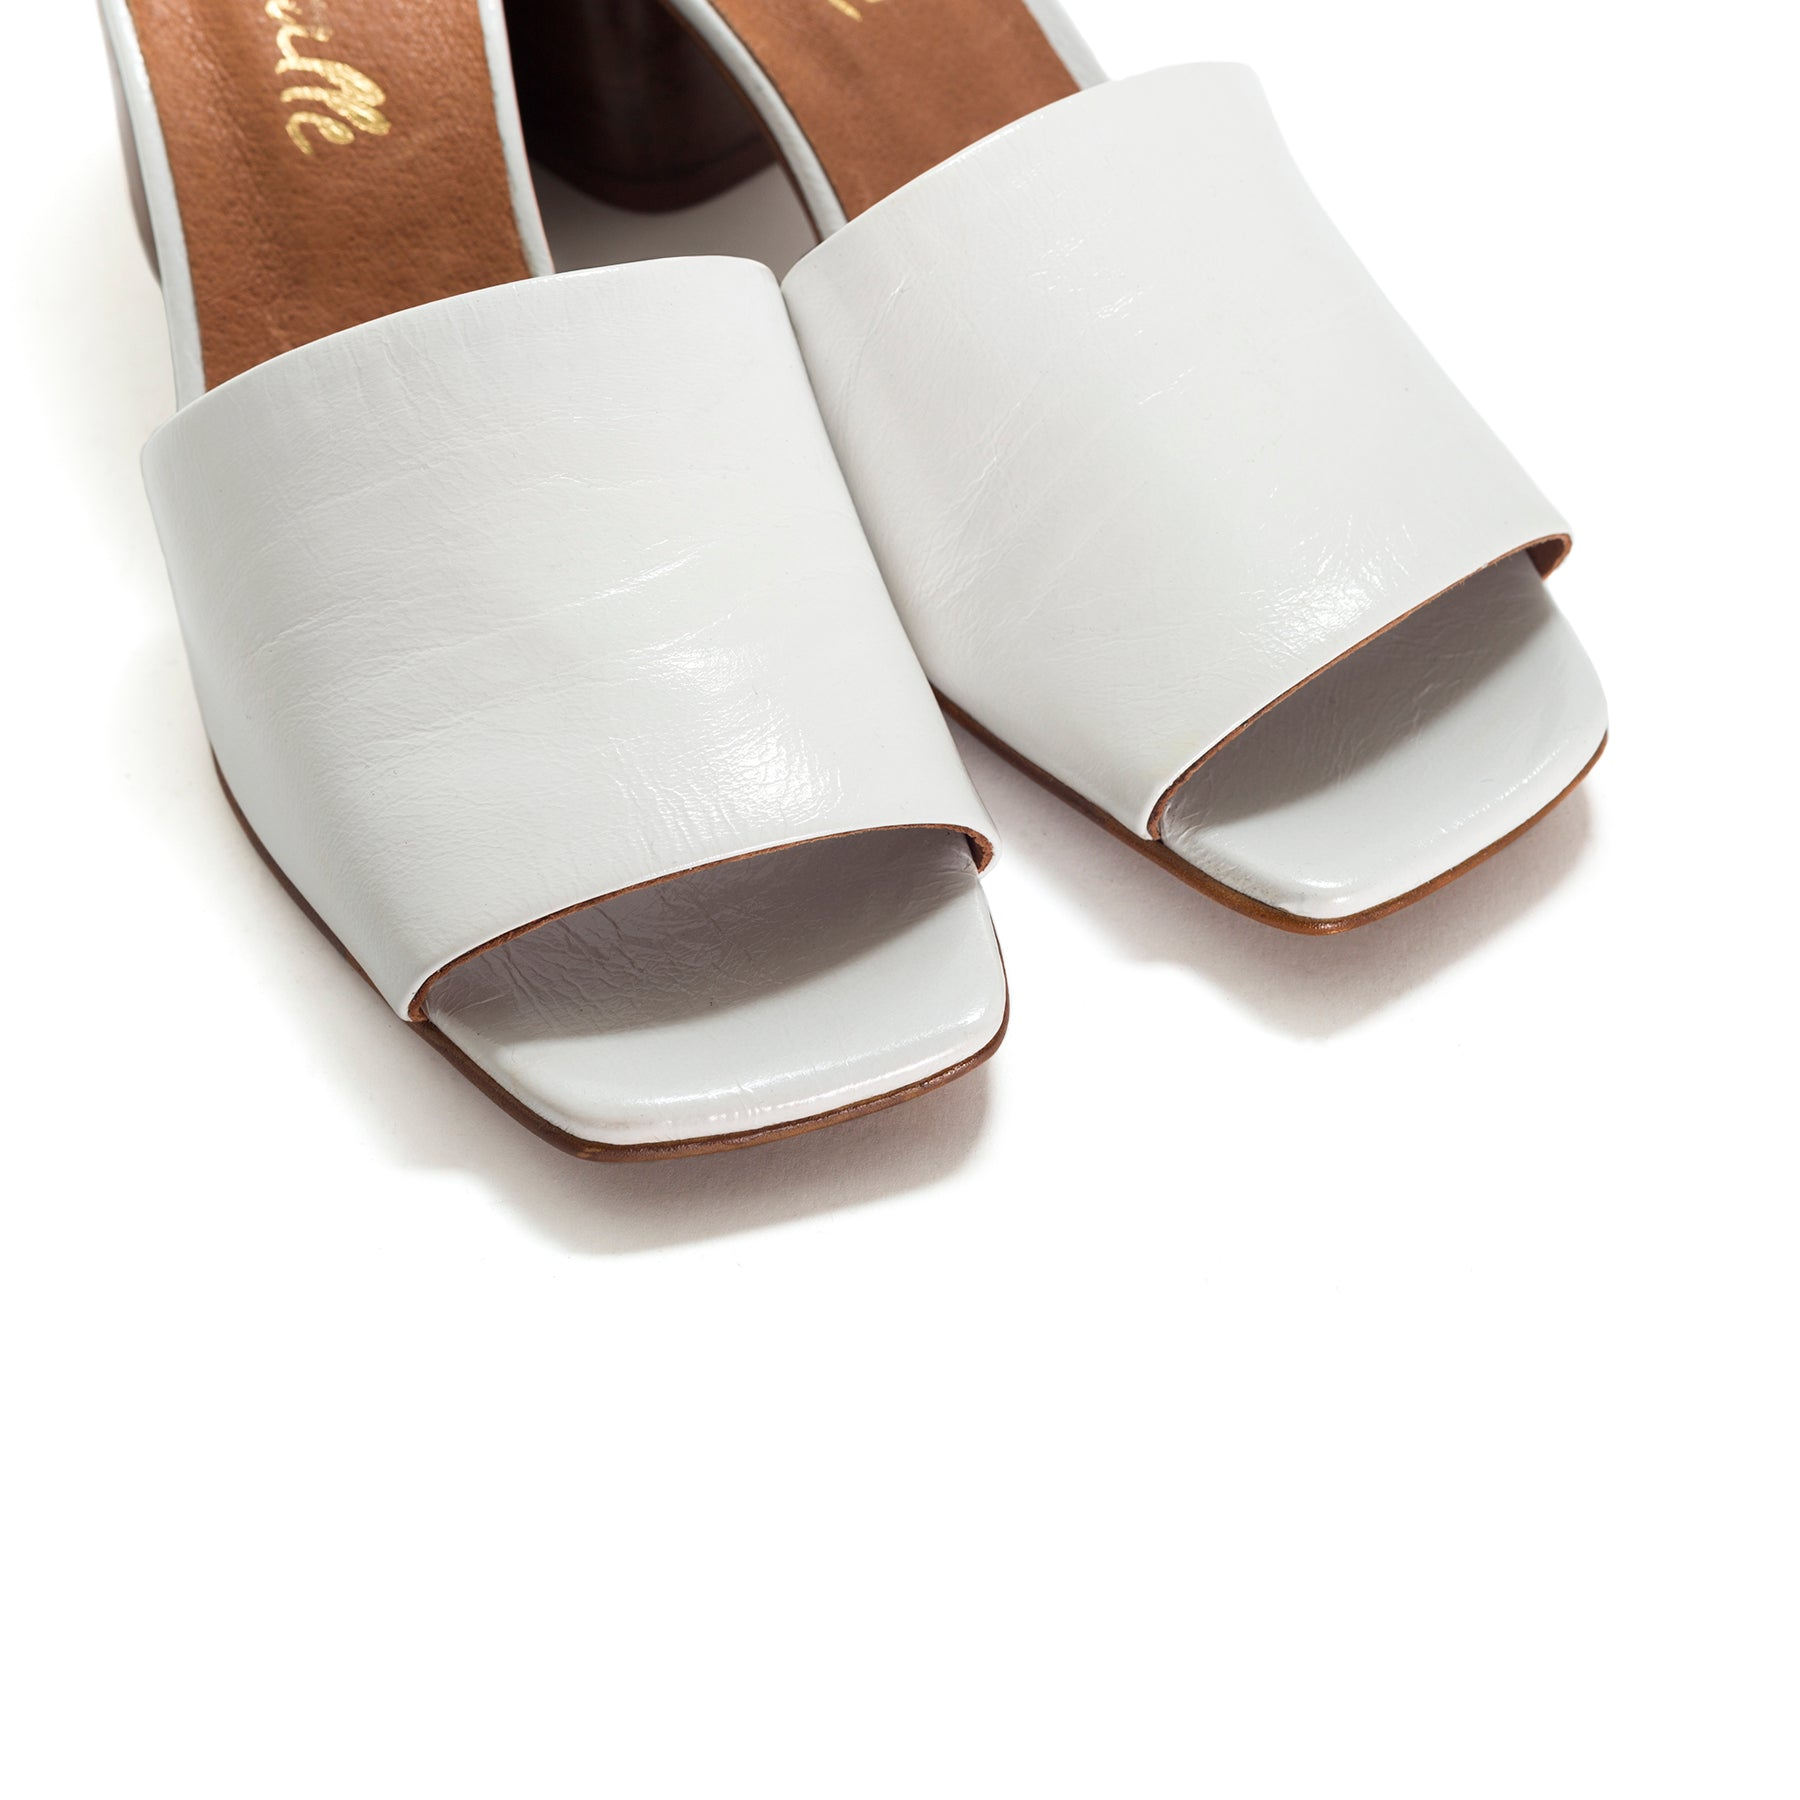 Shanaya White Leather Sandals